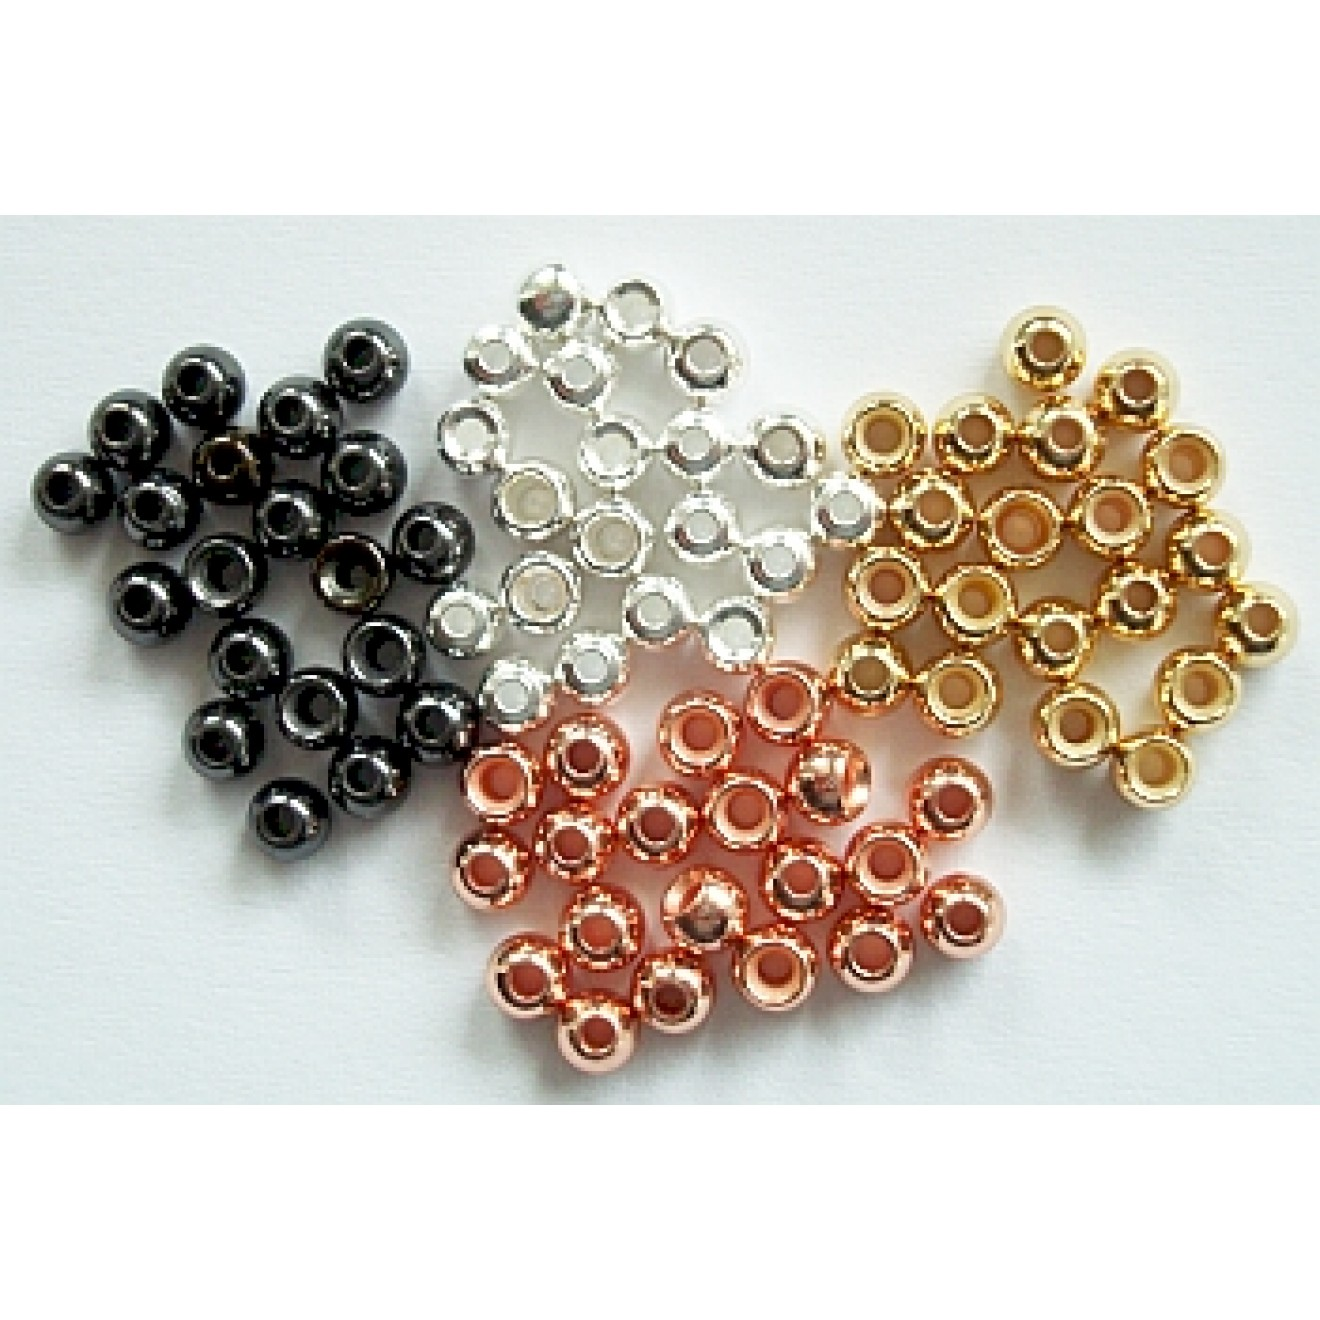 Messing-Perlen Brass Beads 3,2mm-20Stck.